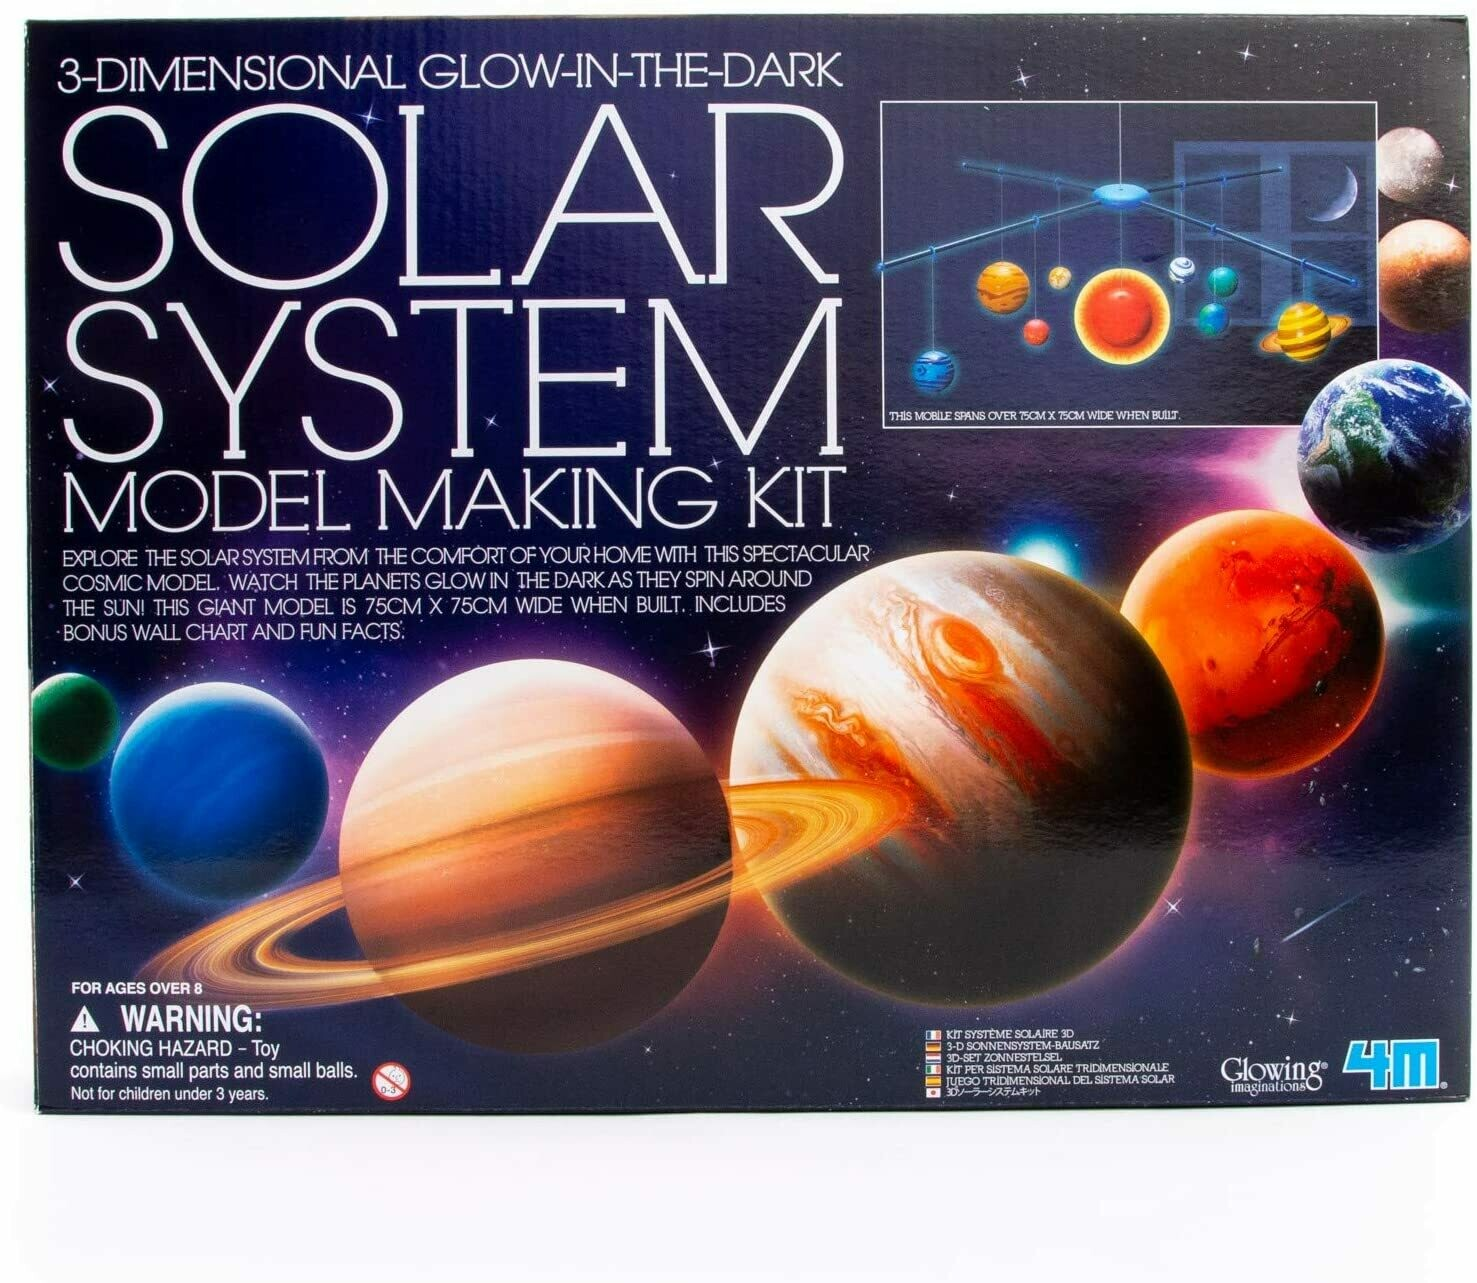 Solar System Model Making Kit - 3D Glow In The Dark